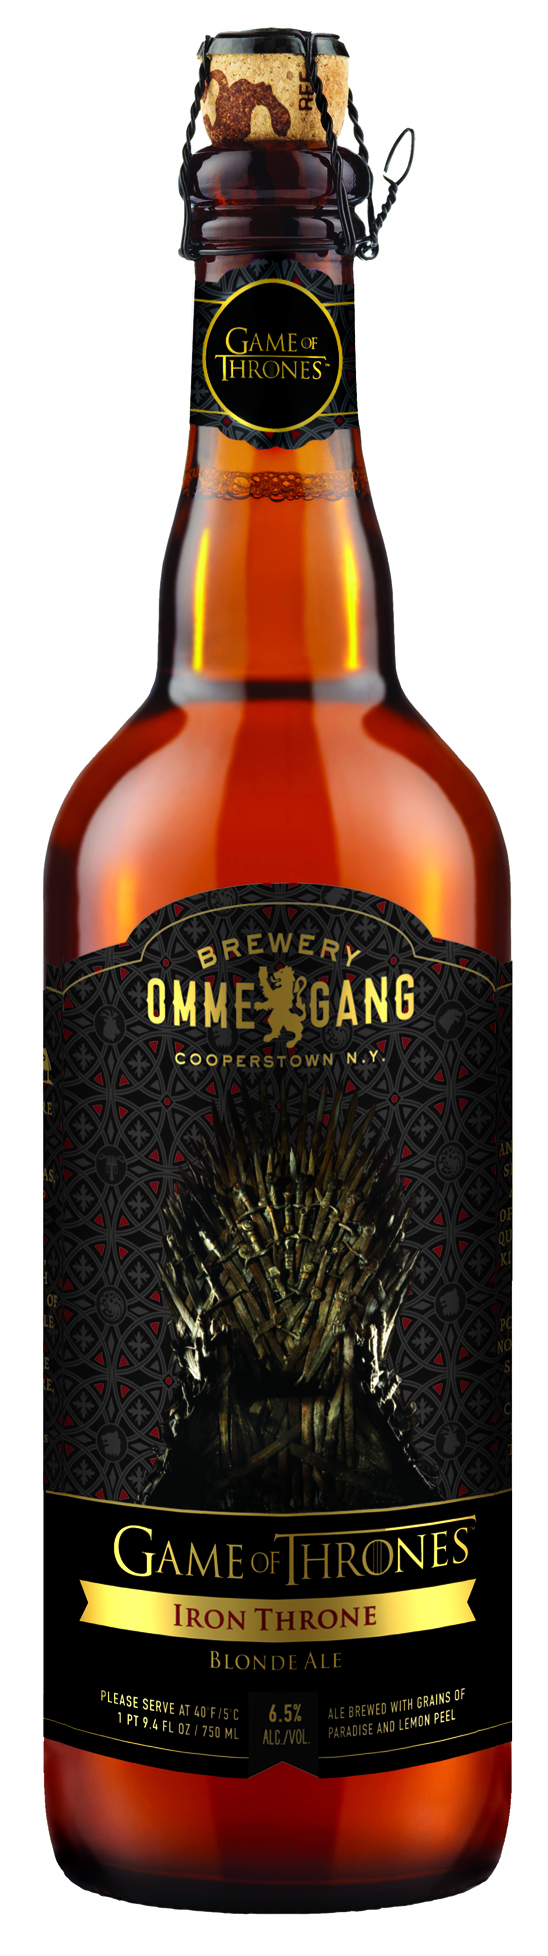 GOT Iron Throne Blonde Ale Dec 17.reduced filesize.jpg